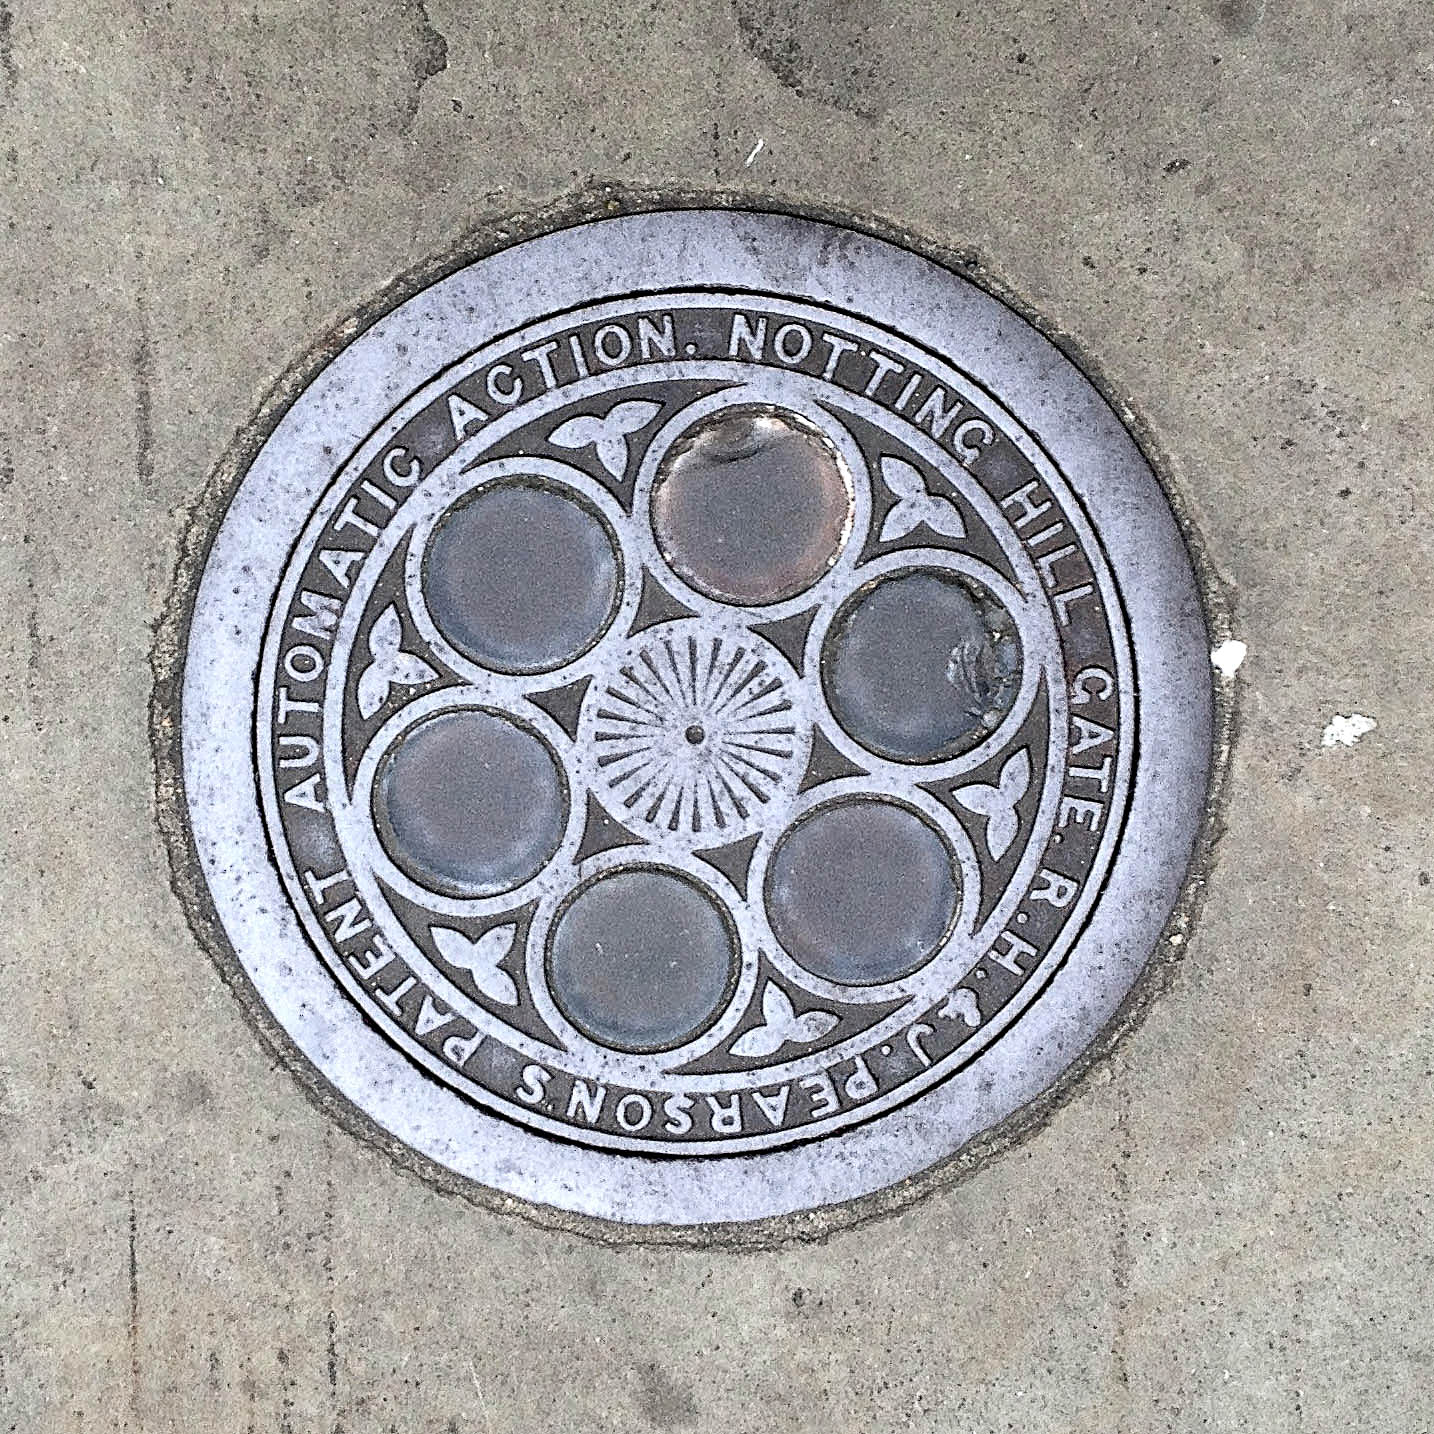 Manhole Cover, London - Cast iron surround inscribed with R H & J Pearson's patent Automatic Action. Notting Hill Gate - Inner, six glass circular inserts